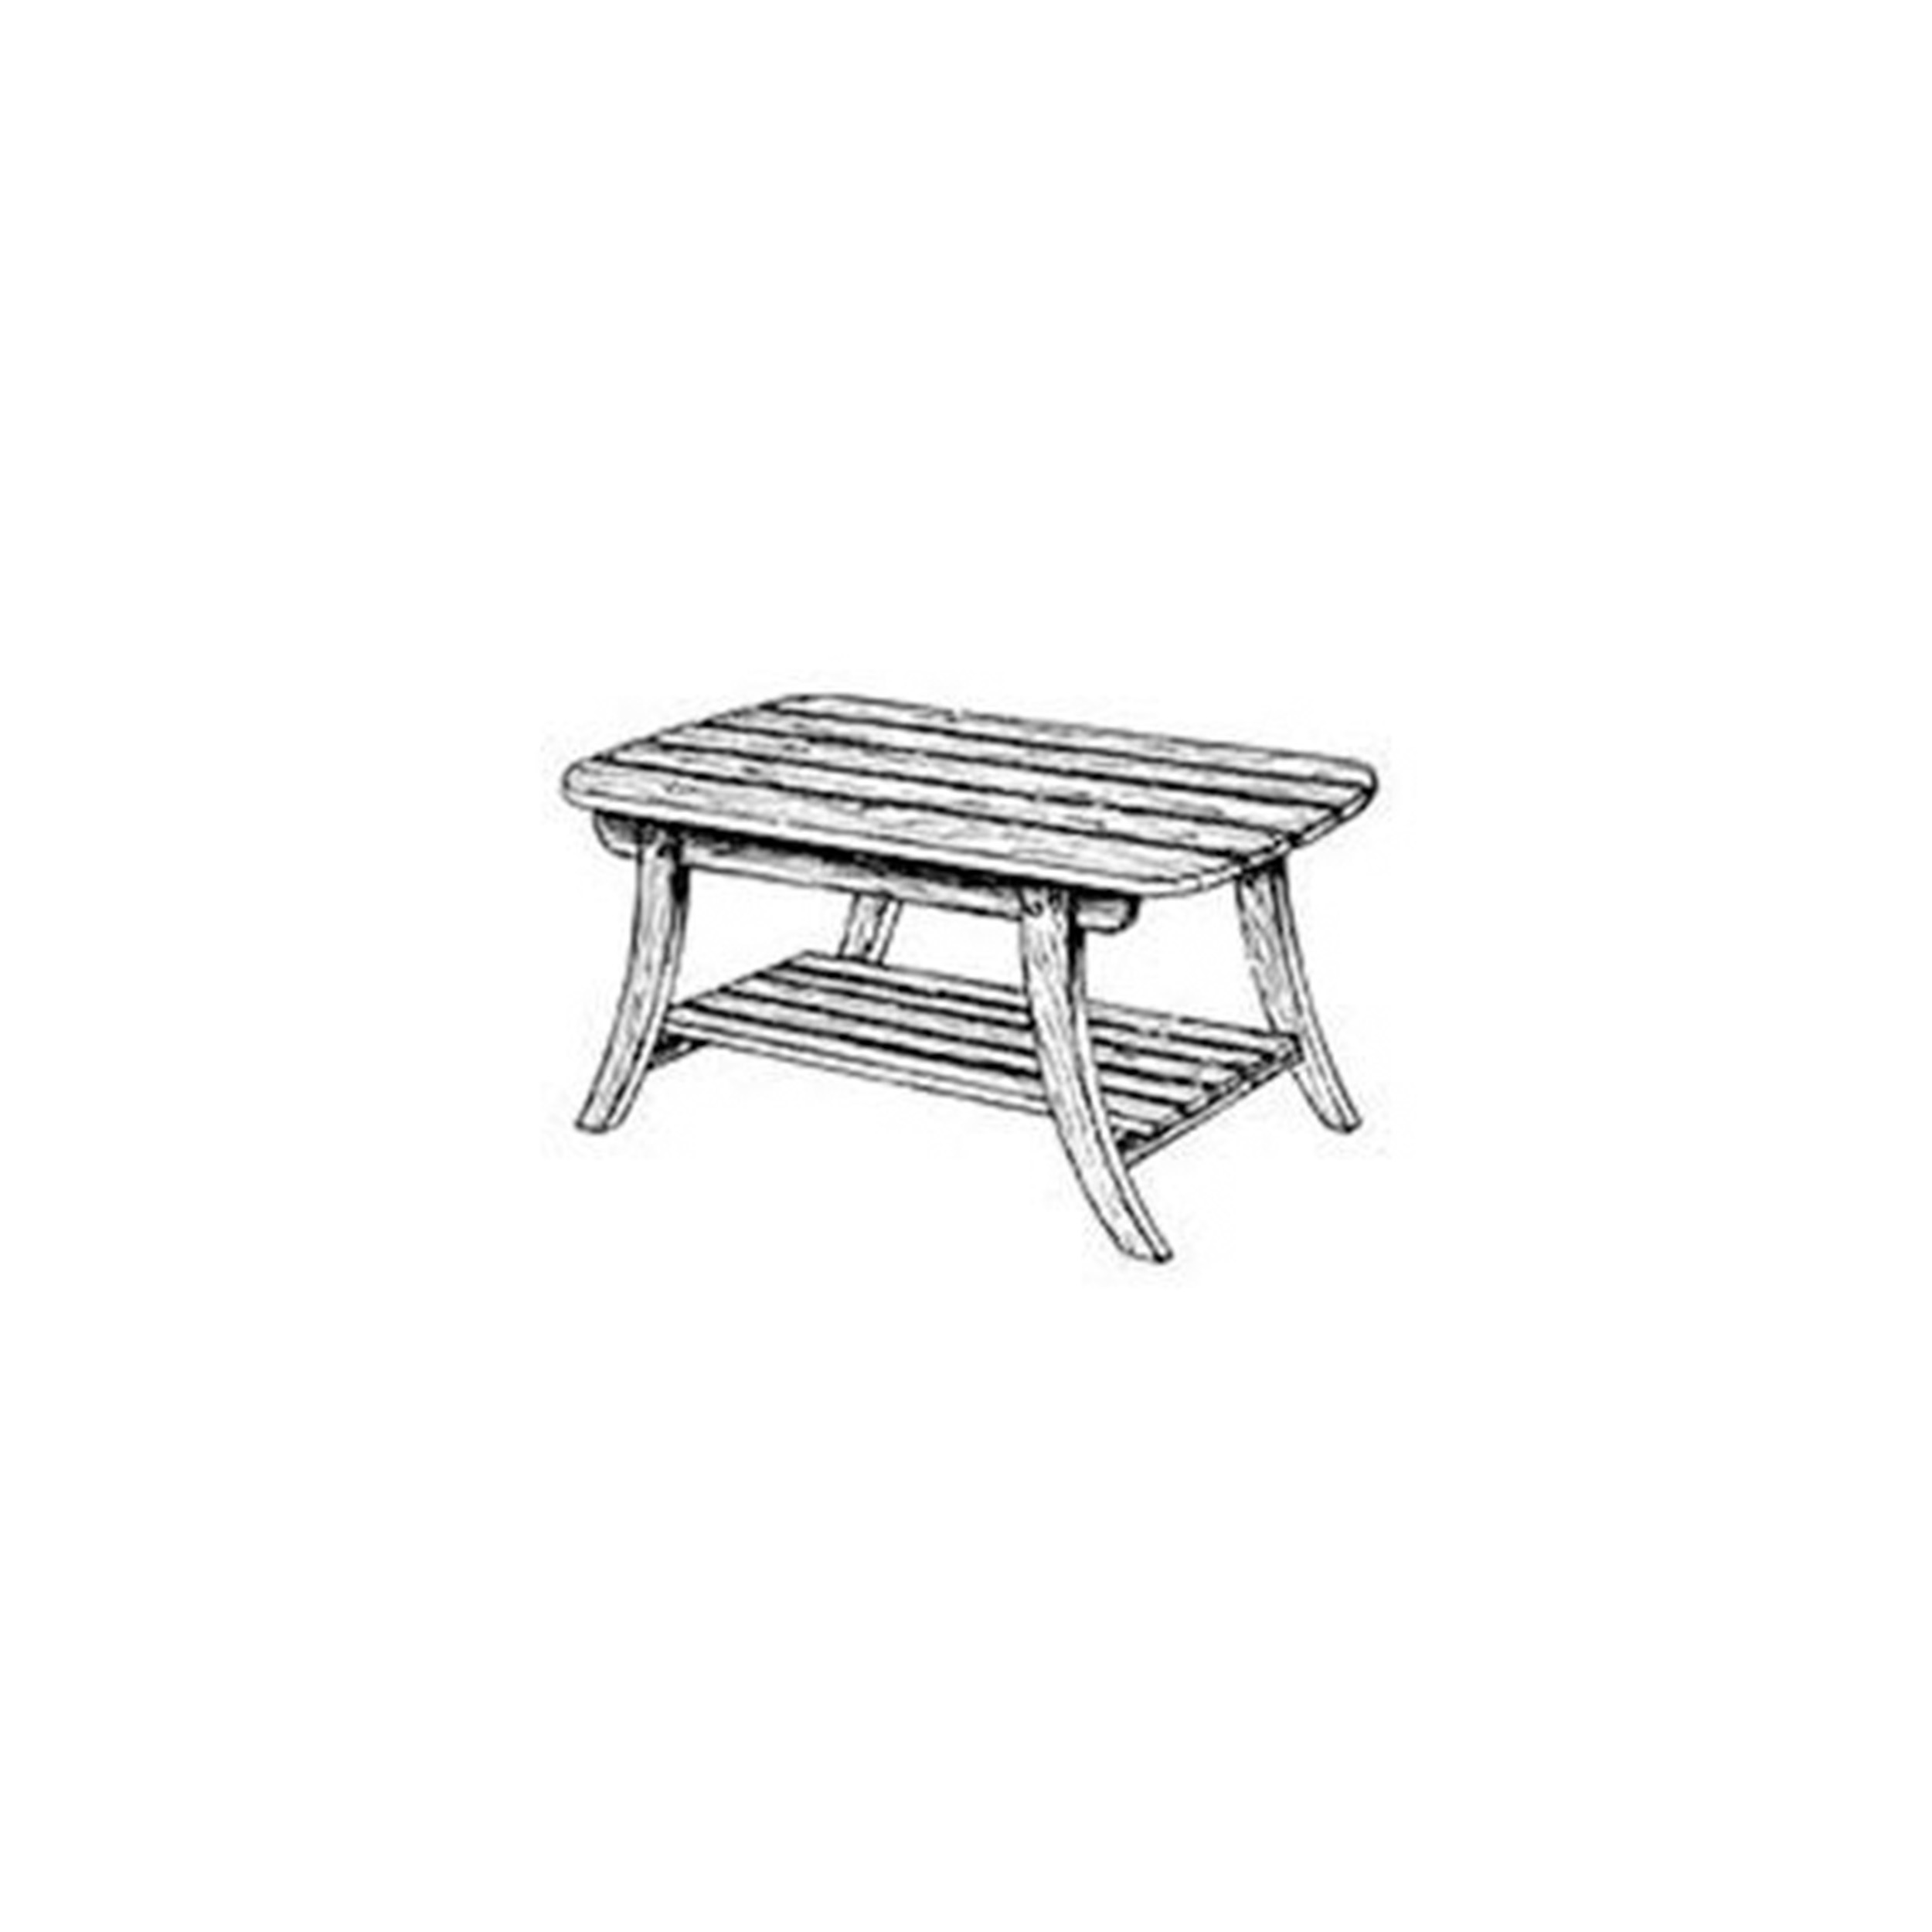 Woodworking Project Paper Plan to Build Garden Table